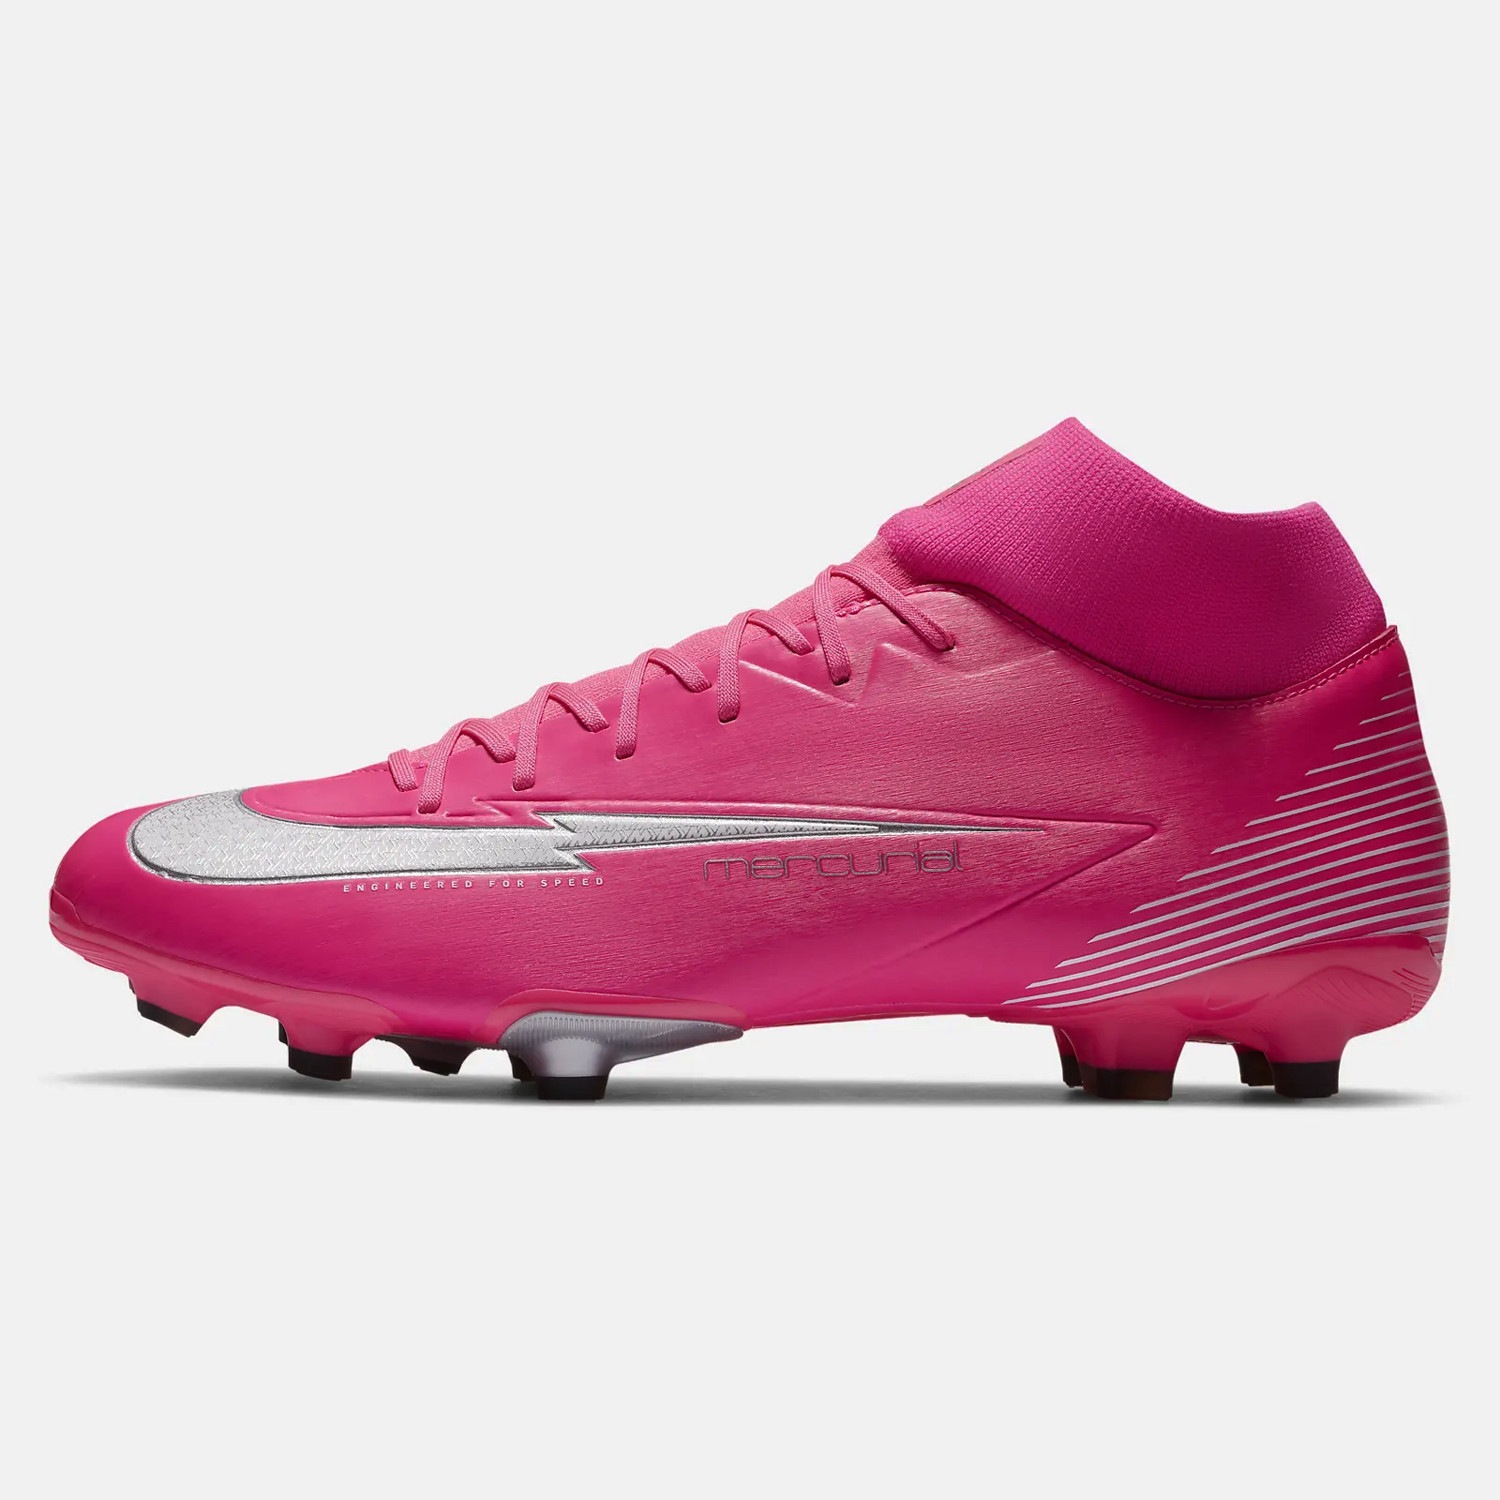 Nike Superfly 7 Academy Mbappe Rosa Ποδοσφαιρικά Παπούτσια (9000055563_46265)